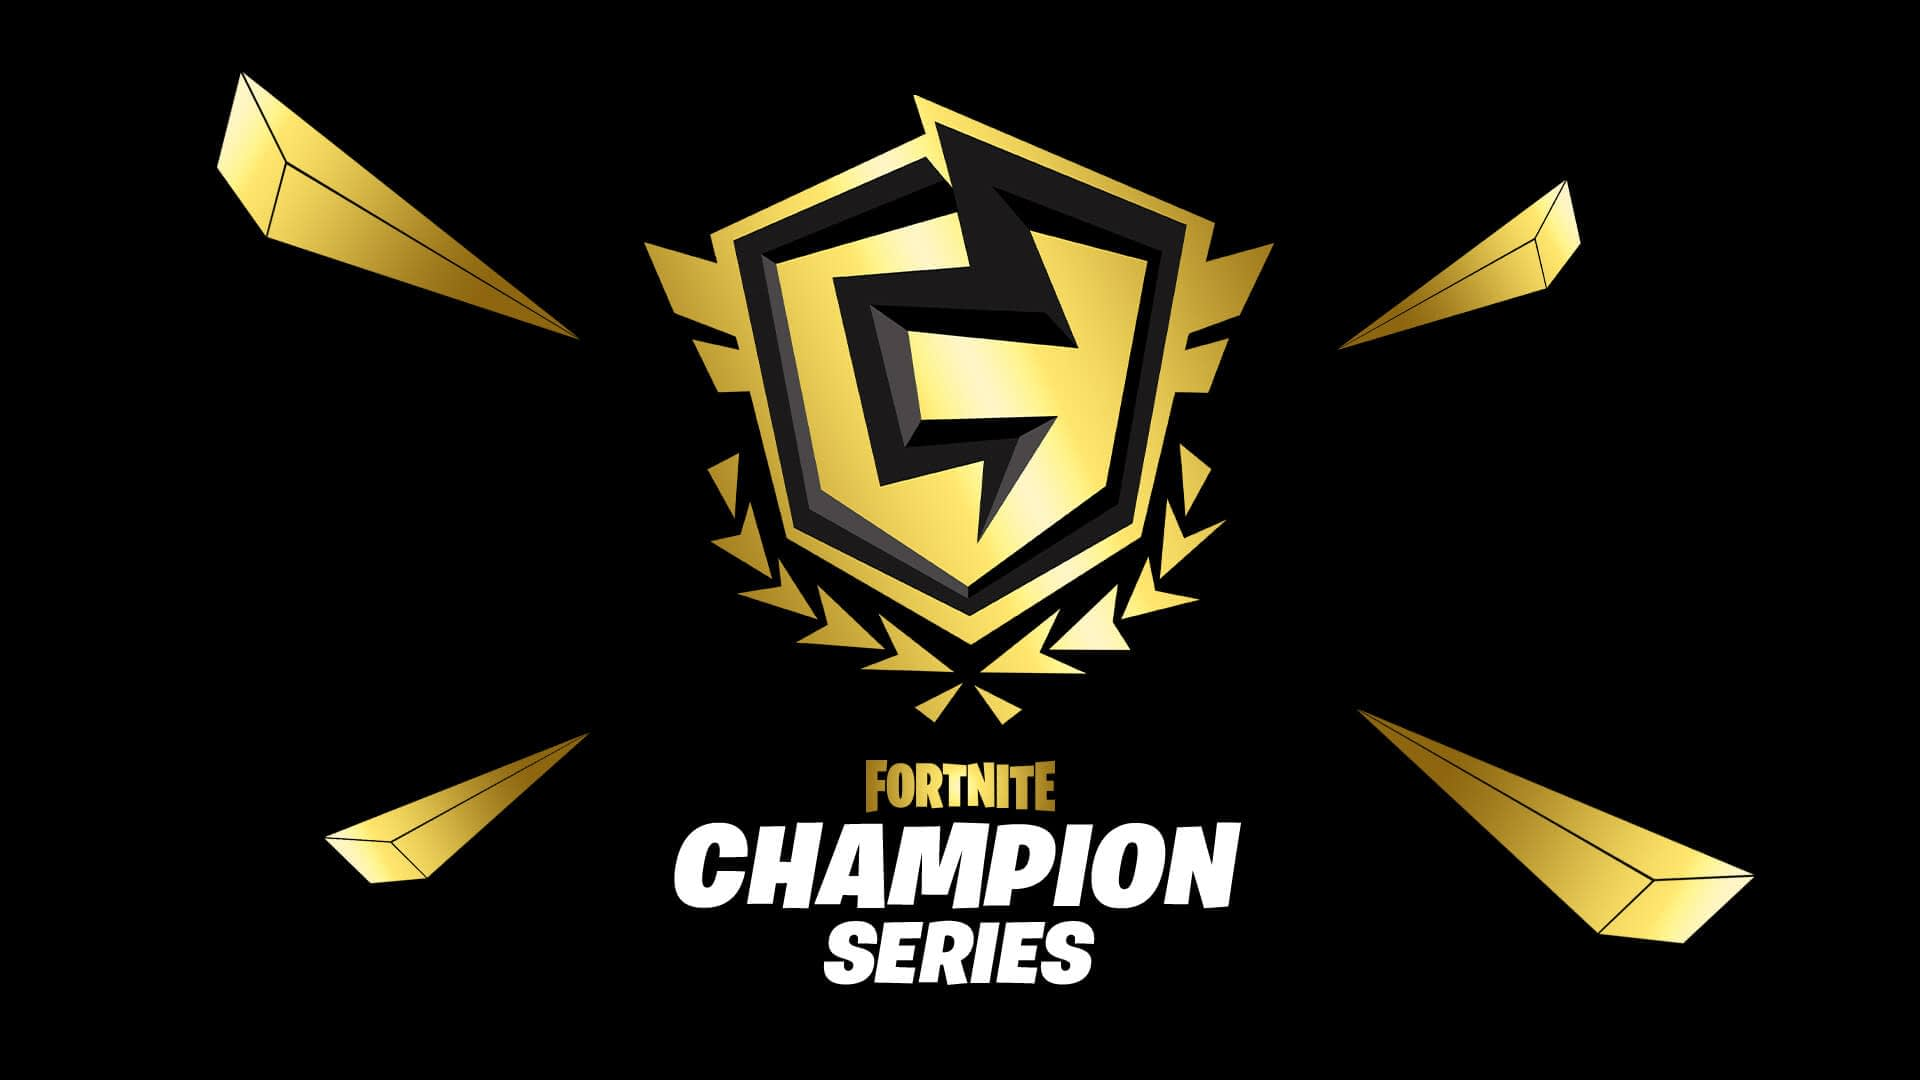 Fortnite: Trios being formed for the Fortnite Champion Series